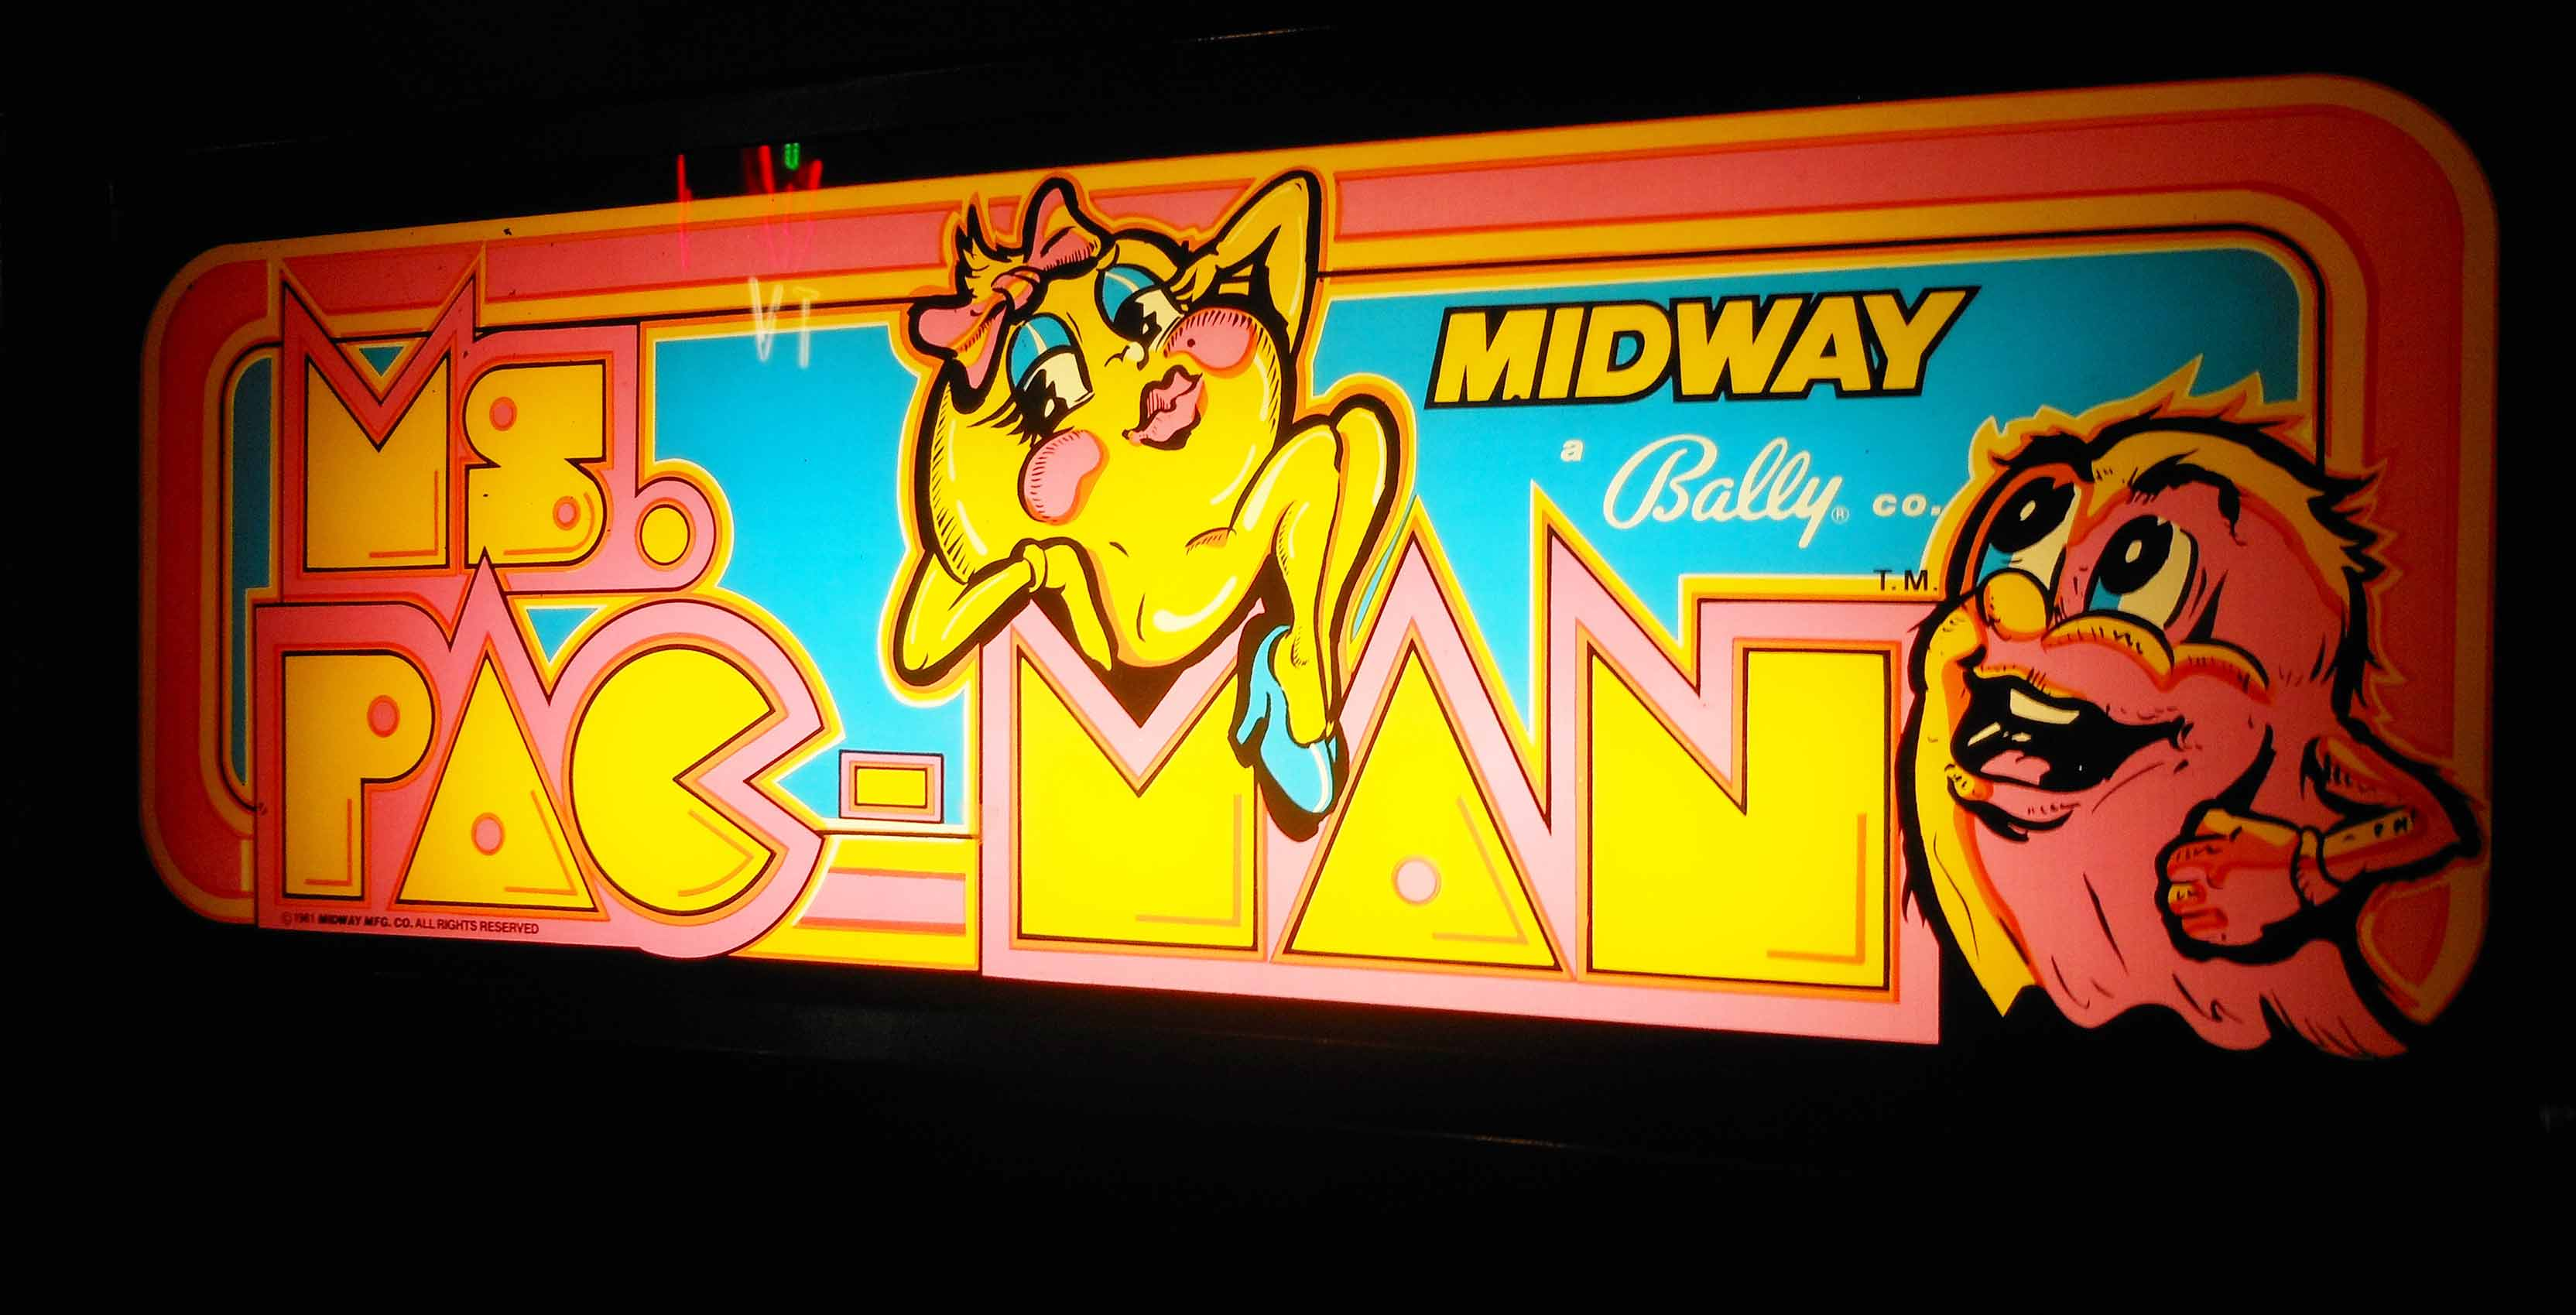 Ms. Pac-Man arcade